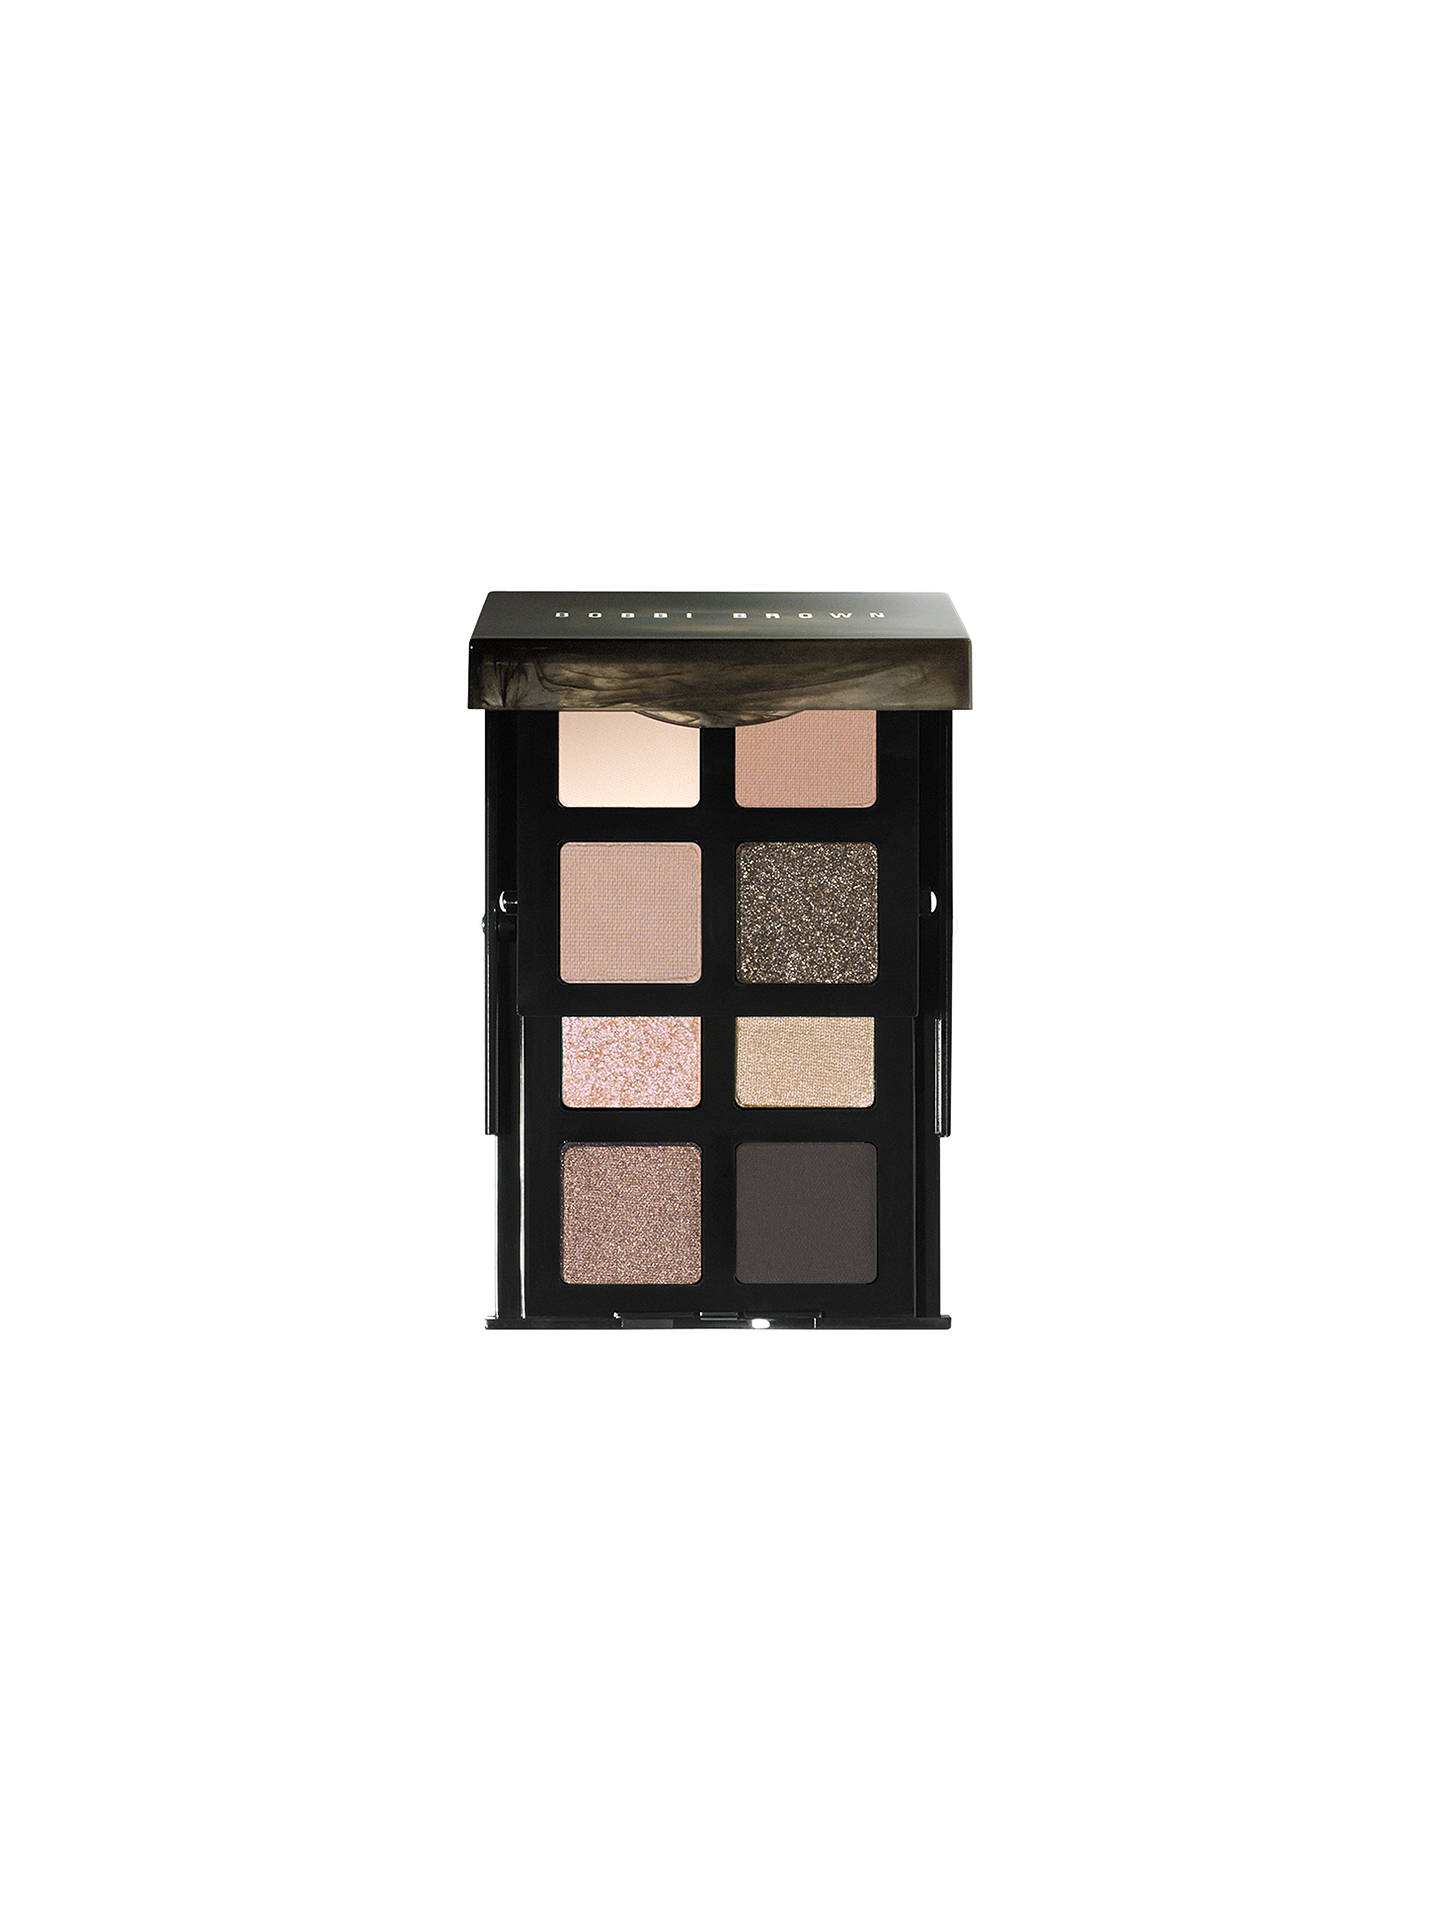 Simply nude double decker compact